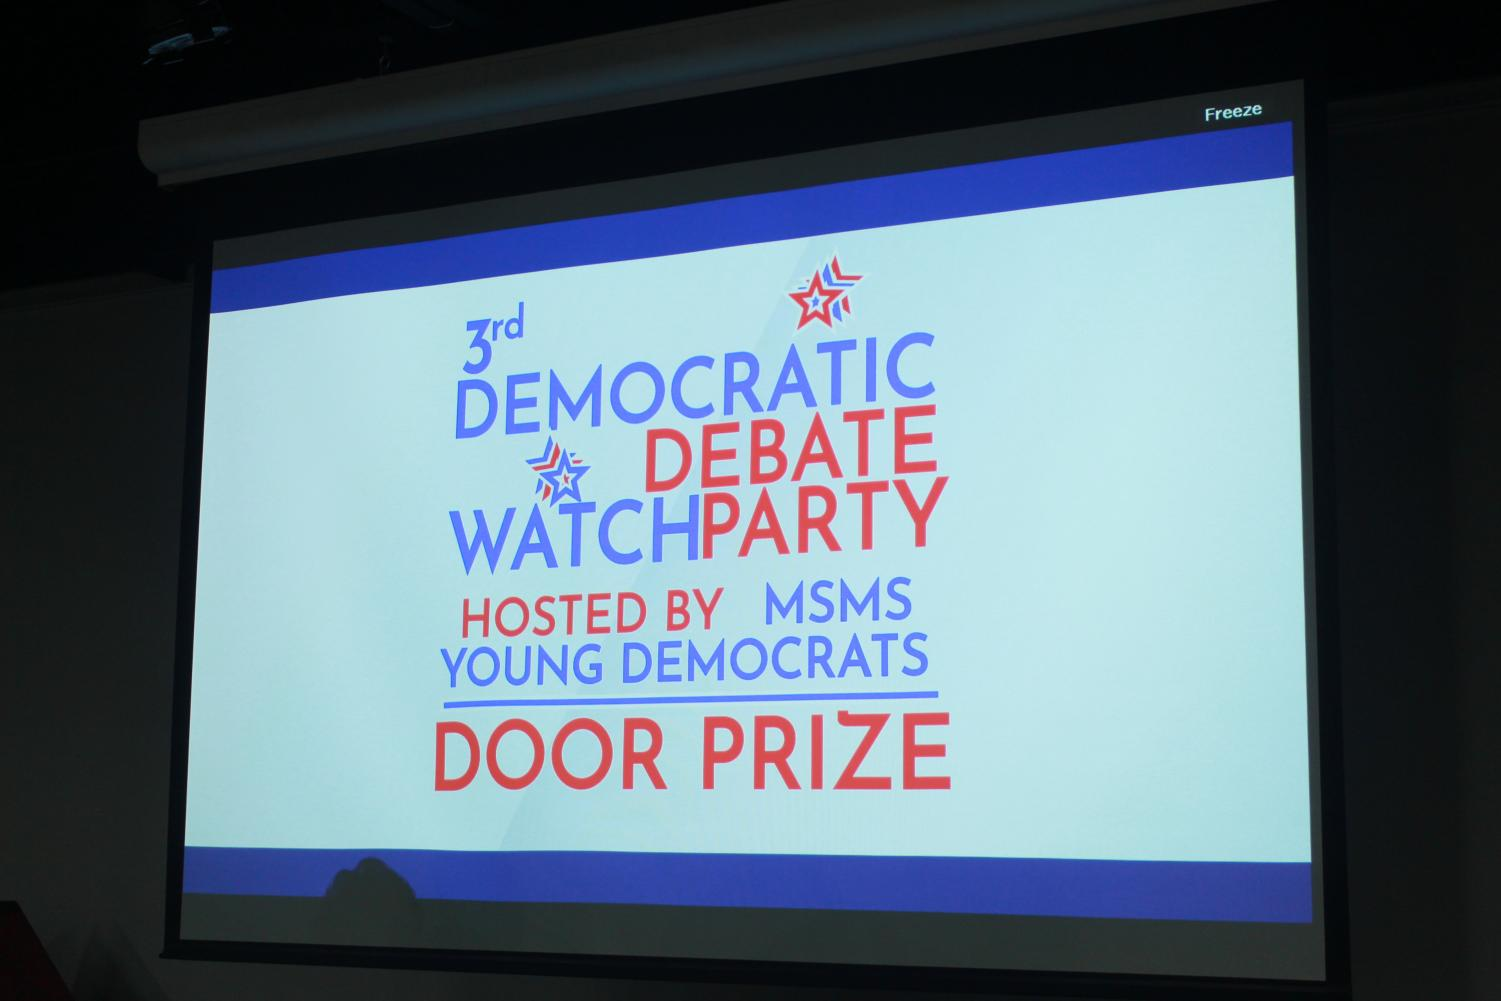 The watch party was open to the school to attend.